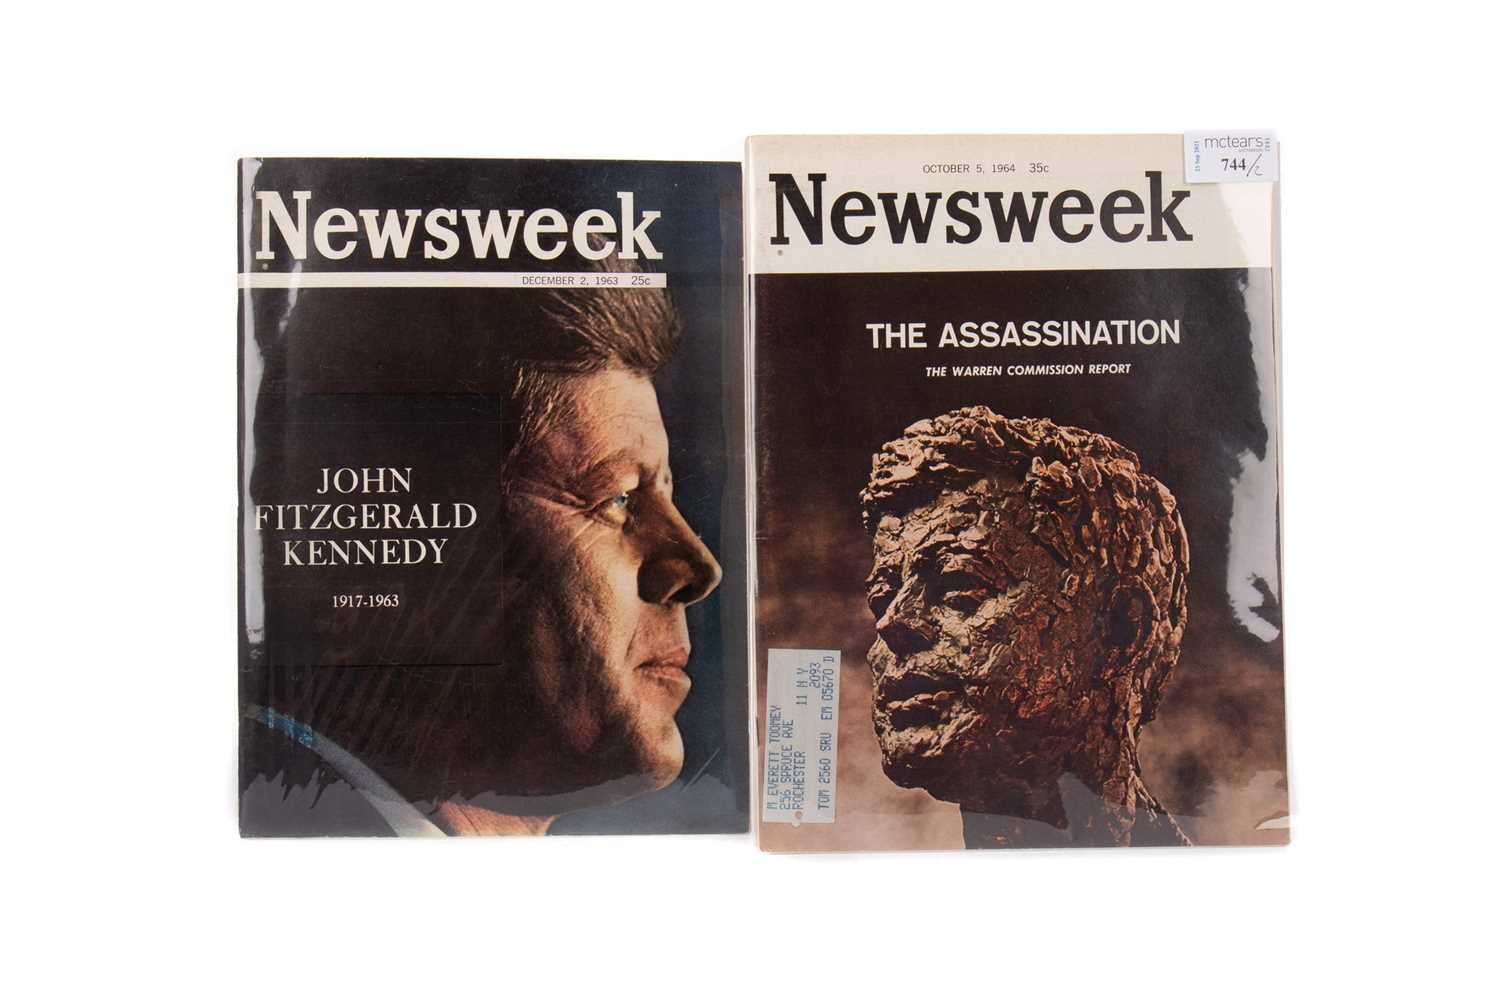 Lot 744 - TWO COPIES OF NEWSWEEK COMMEMORATING THE ASSASSINATION OF JOHN F. KENNEDY